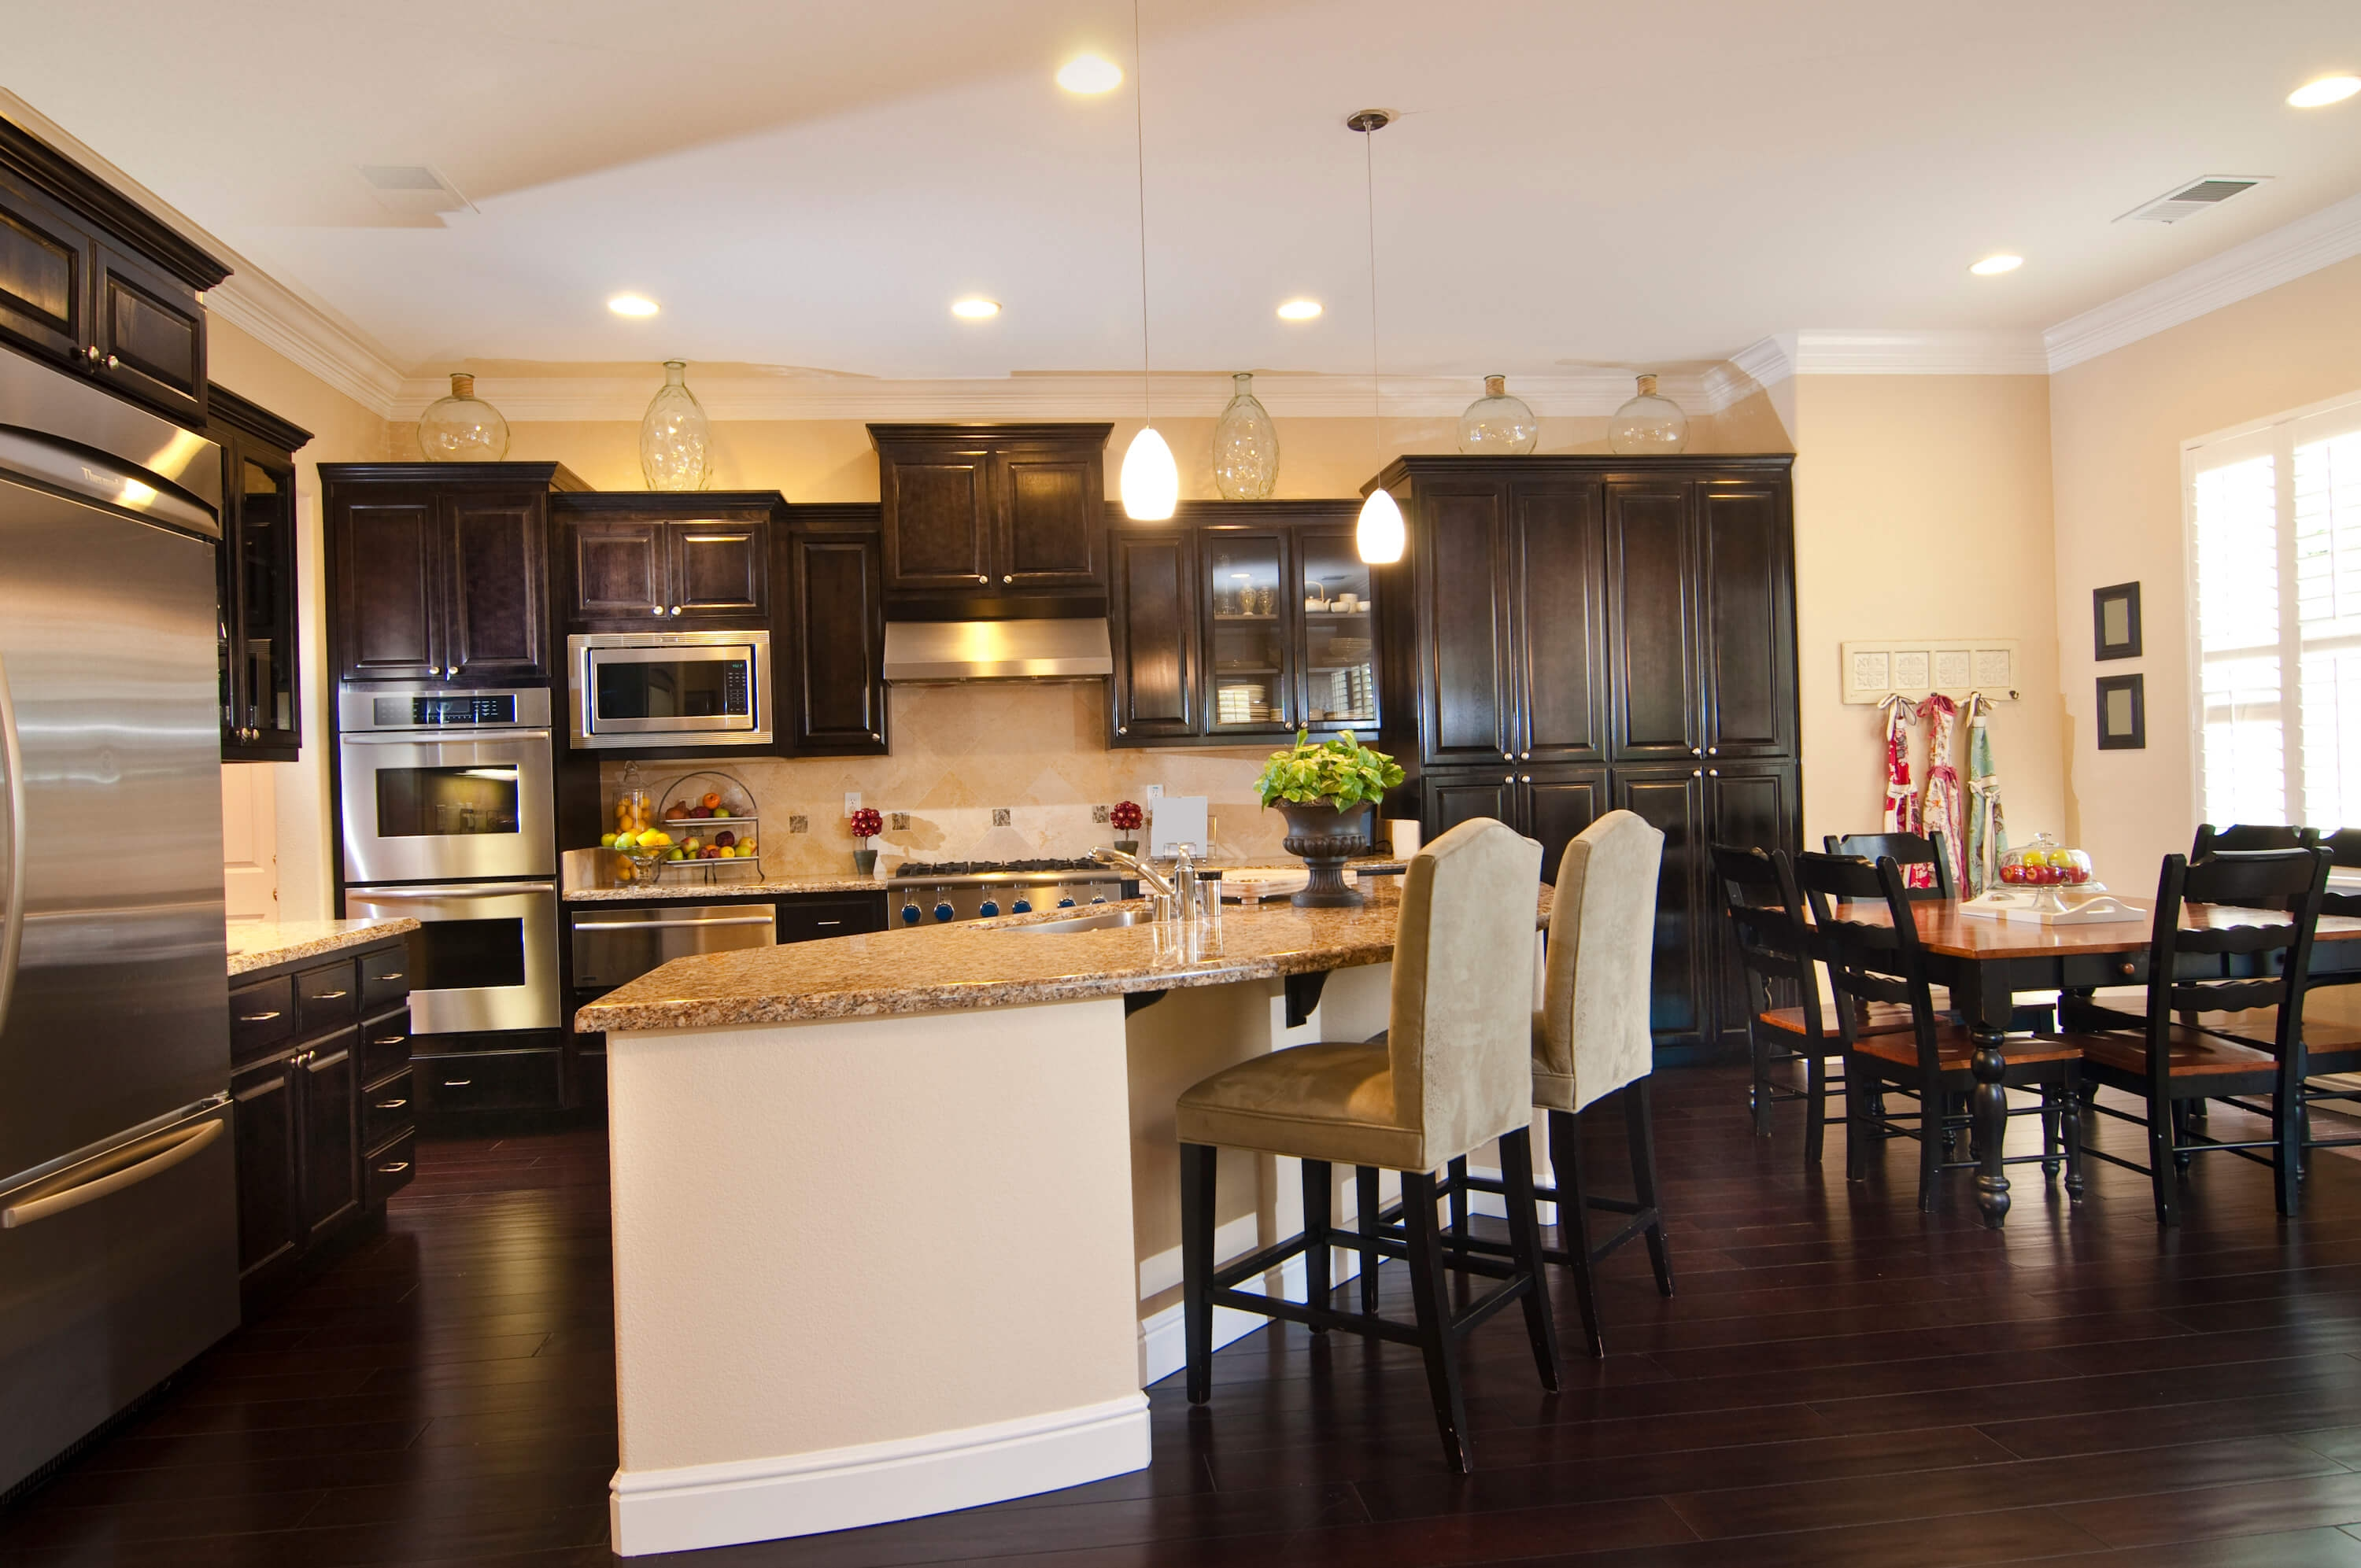 Best Color For Kitchen Cabinets With Dark Floors34 kitchens with dark wood floors pictures